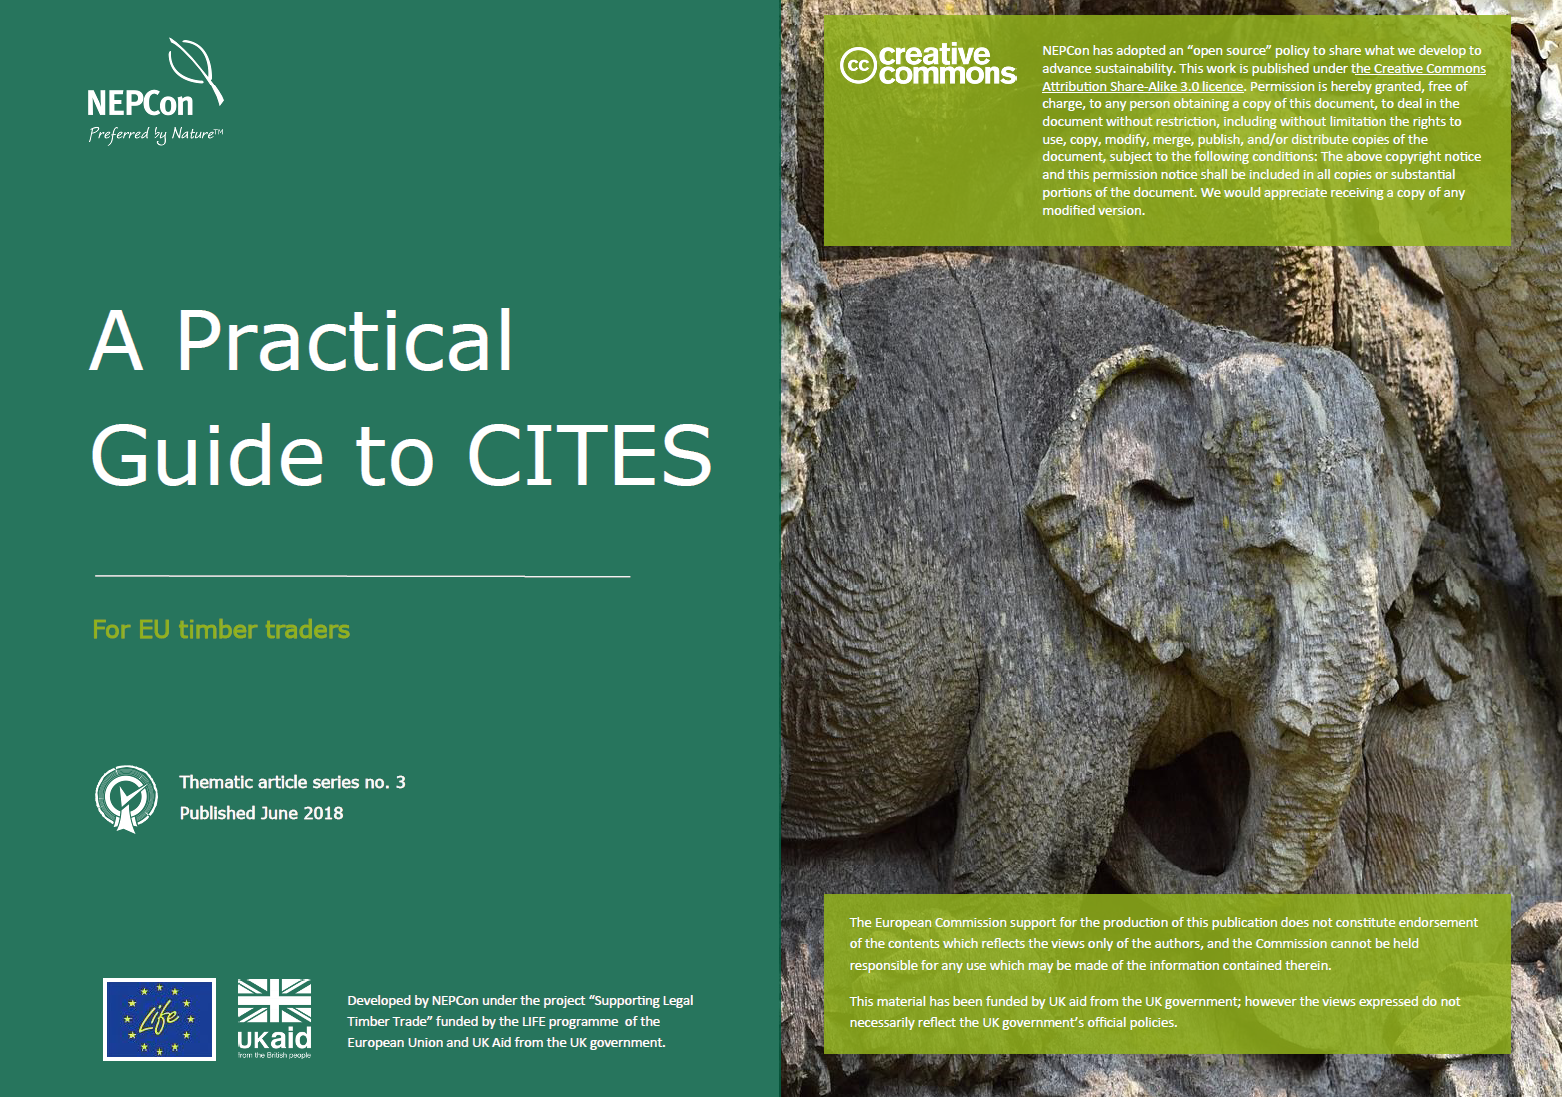 A-Practical-Guide-to-CITES